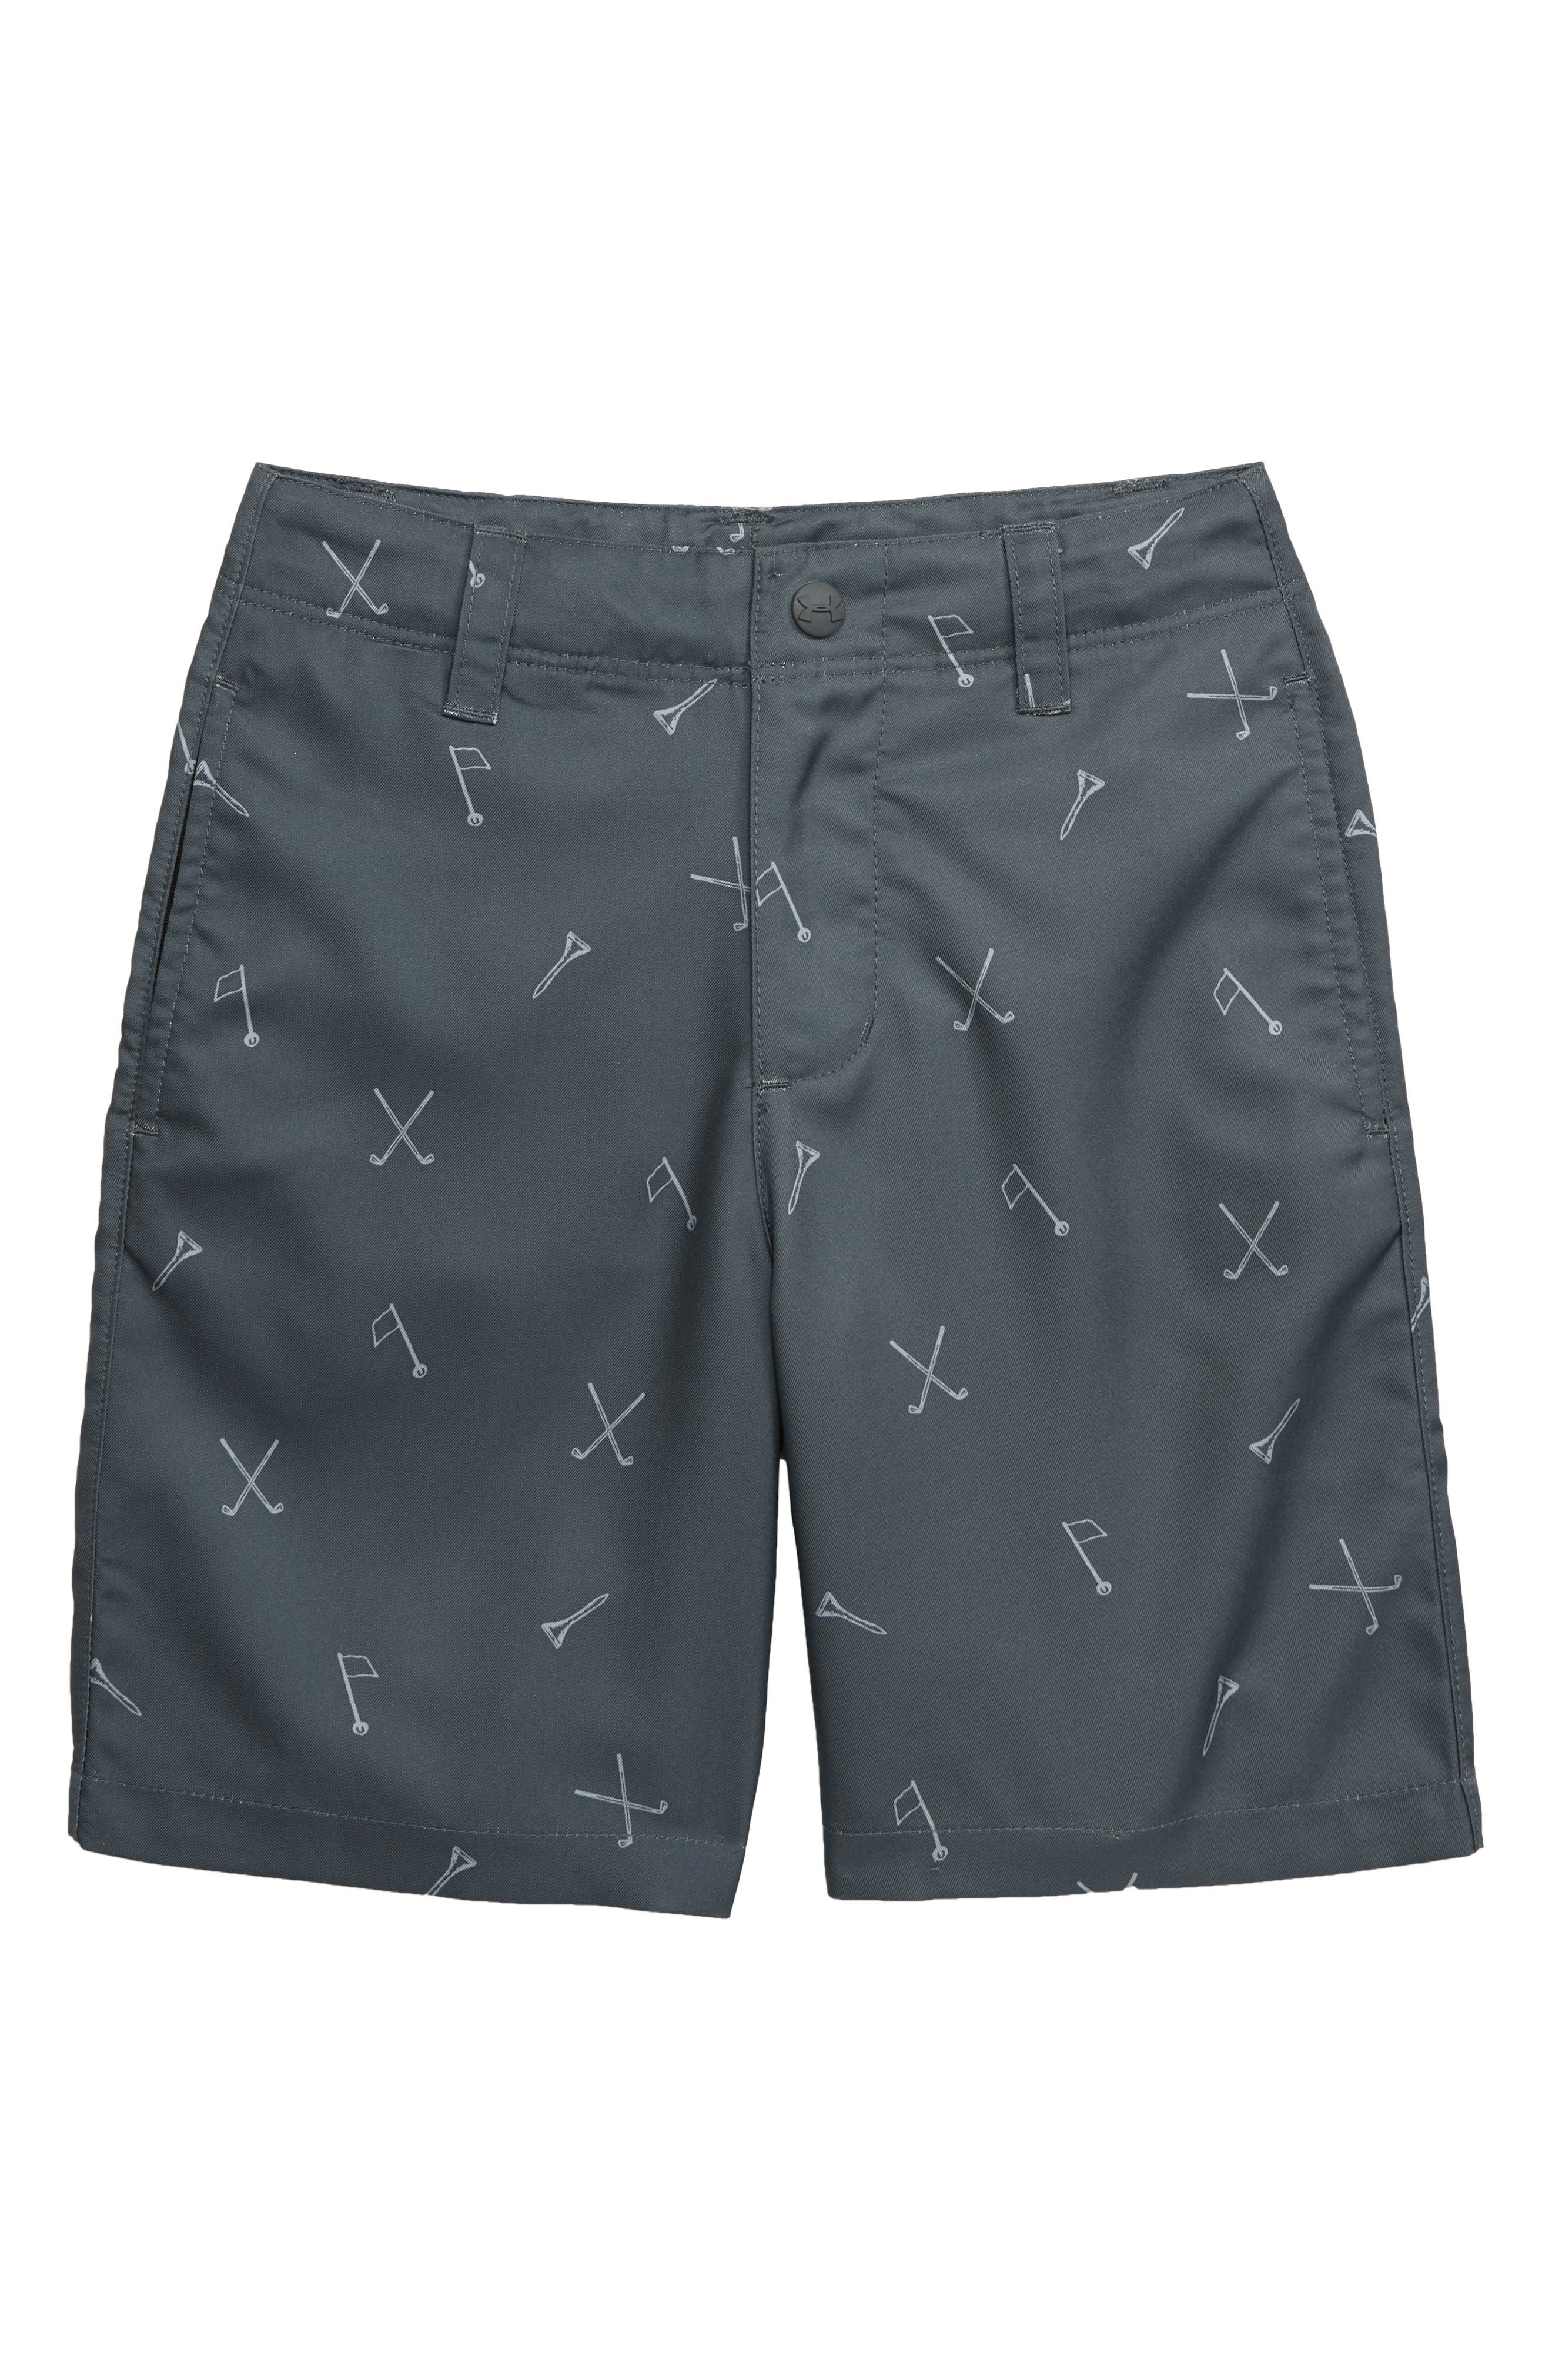 UNDER ARMOUR, Golf Icons HeatGear<sup>®</sup> Golf Shorts, Main thumbnail 1, color, PITCH GRAY